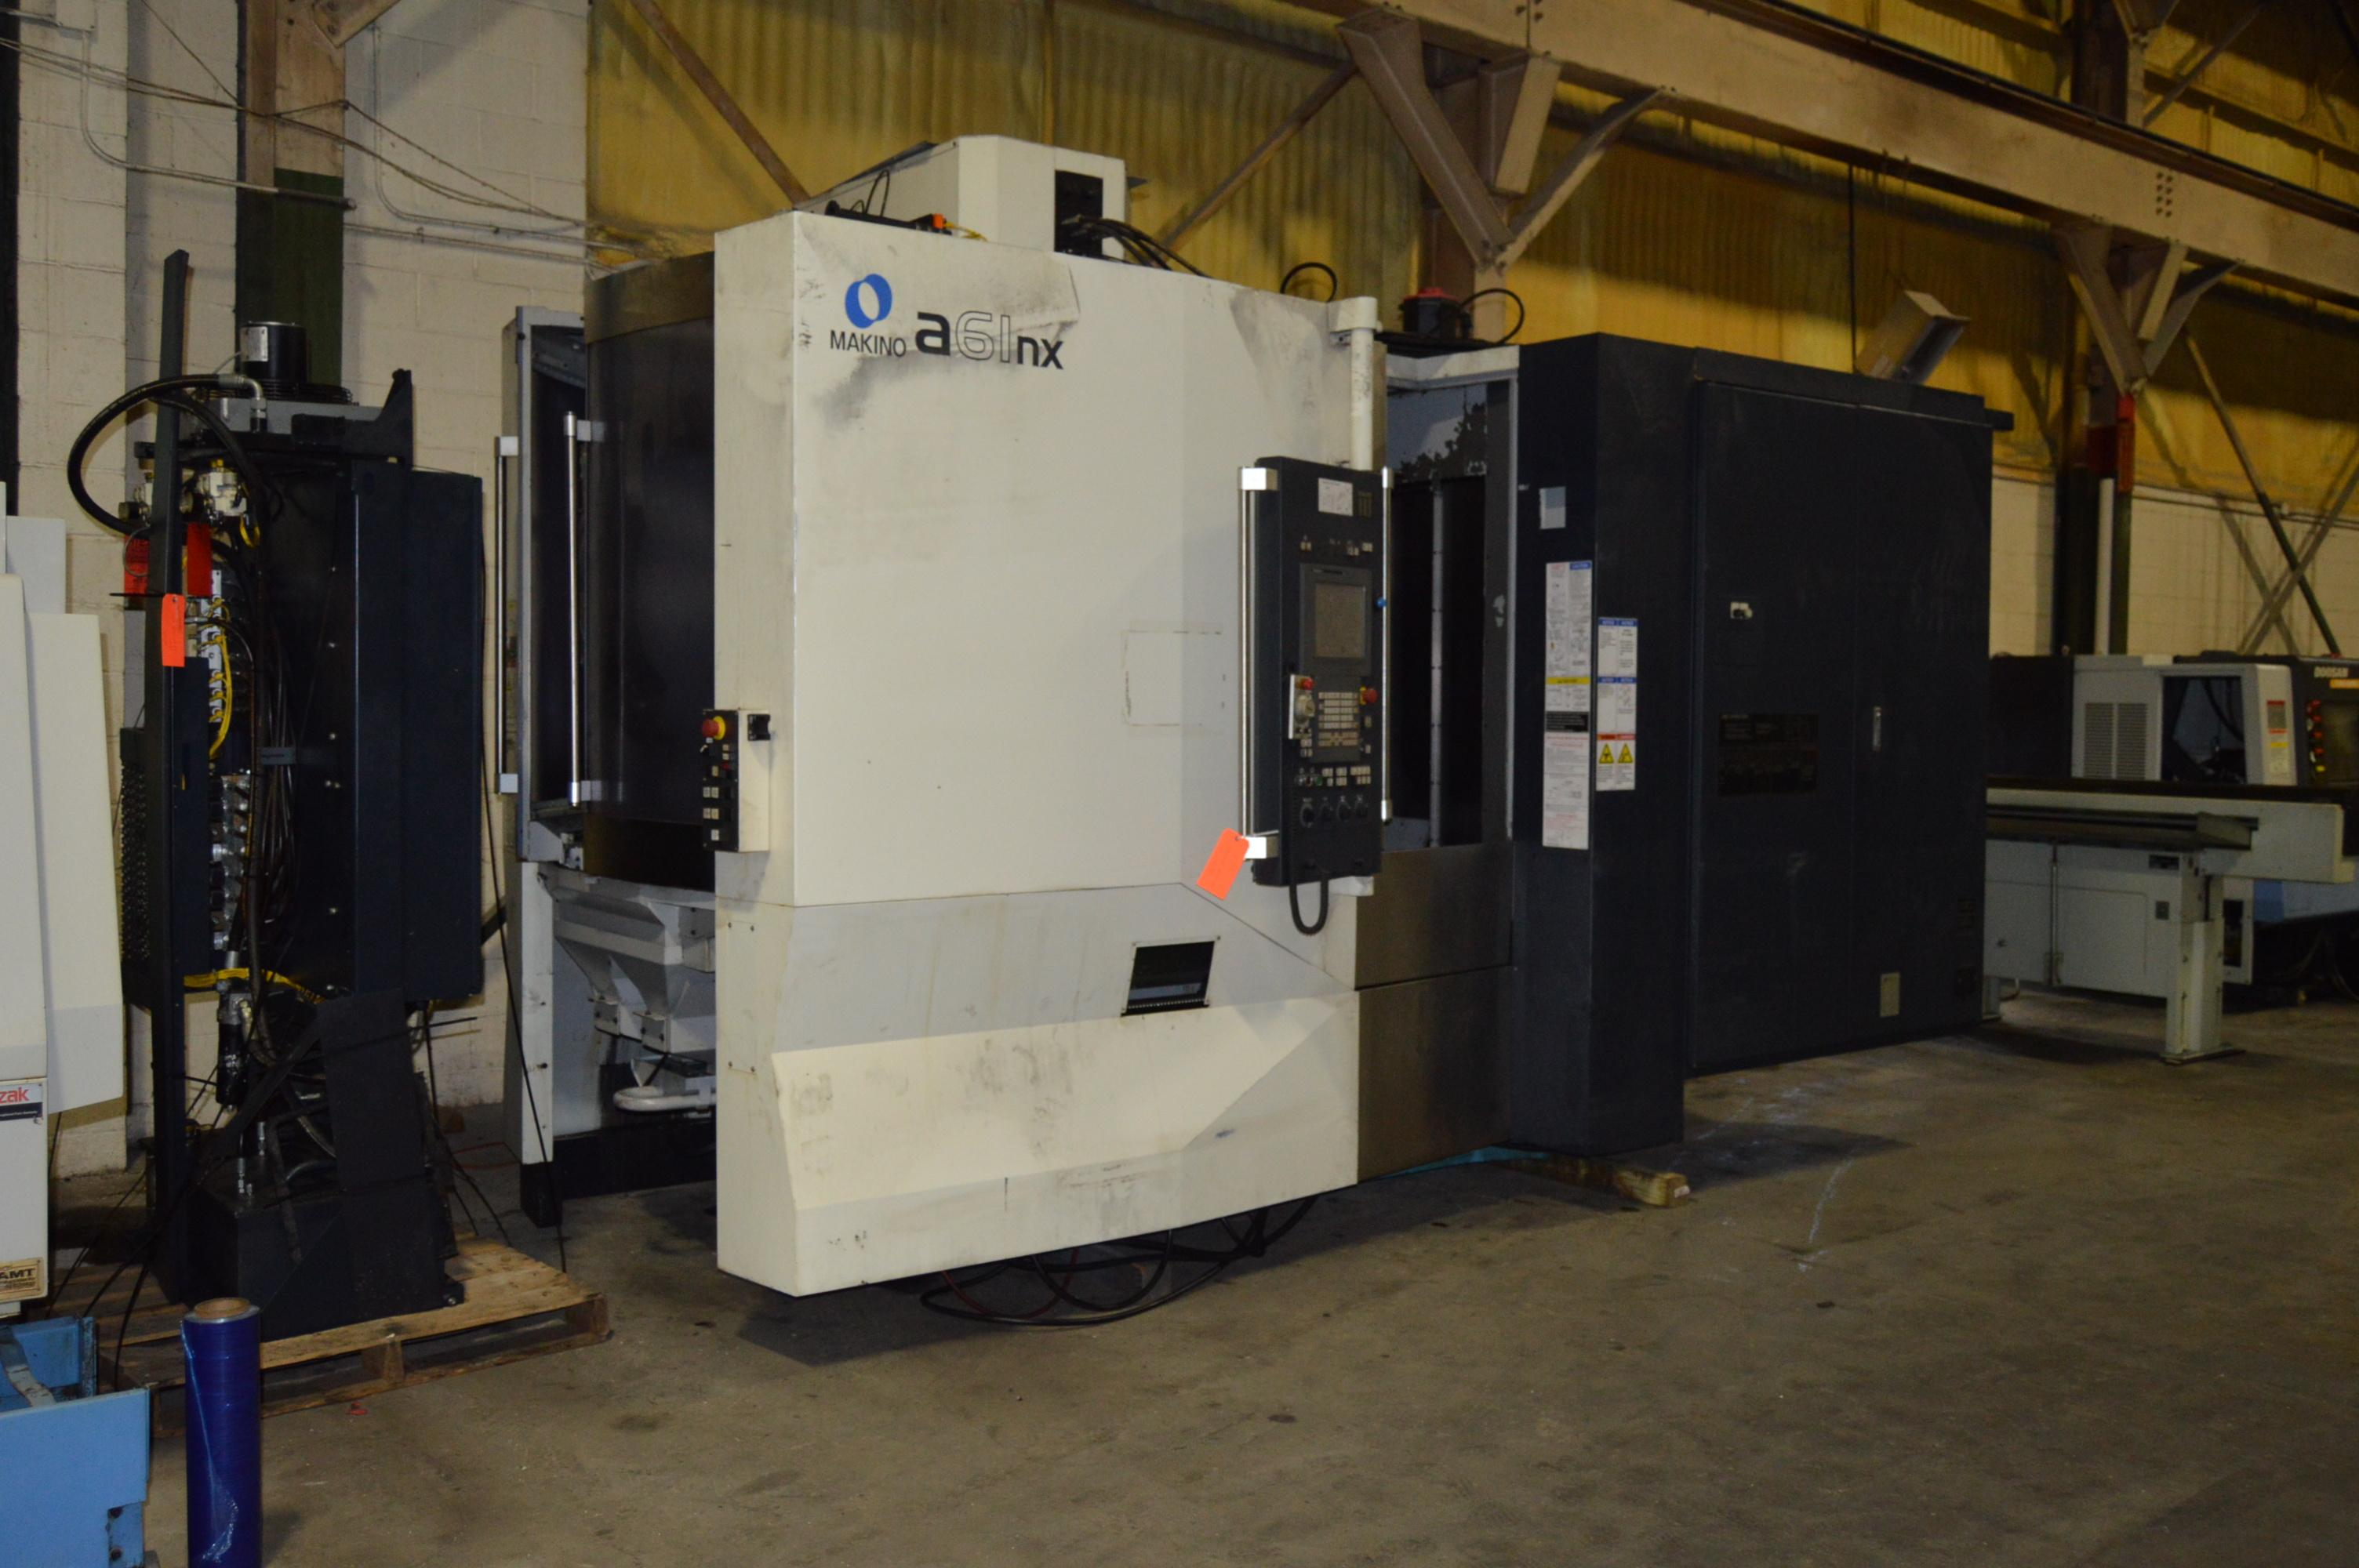 "Makino A-61NX CNC Horizontal Machining Center, Fanuc Pro 5 Control, CTS, 29""/26""/32"" Travel, Full 4th, 40 Taper, 60 ATC, New Spindle ('19), Hyd. Clamping (4) Available, 2012"